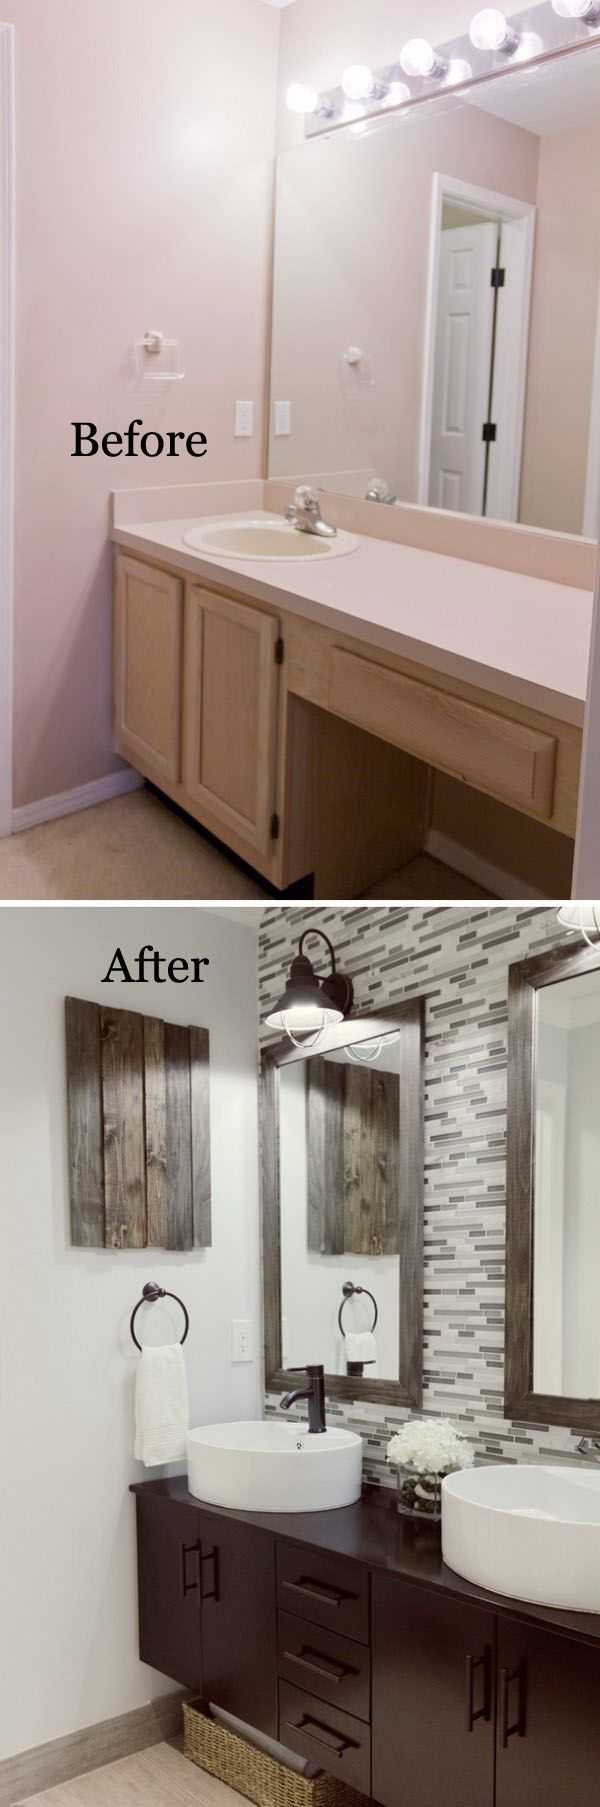 These 14 Bathroom Makeovers Are So GORGEOUS! I Love That There Are Options  For Both Small And Large Bathrooms. The Designs Work So Perfectly.